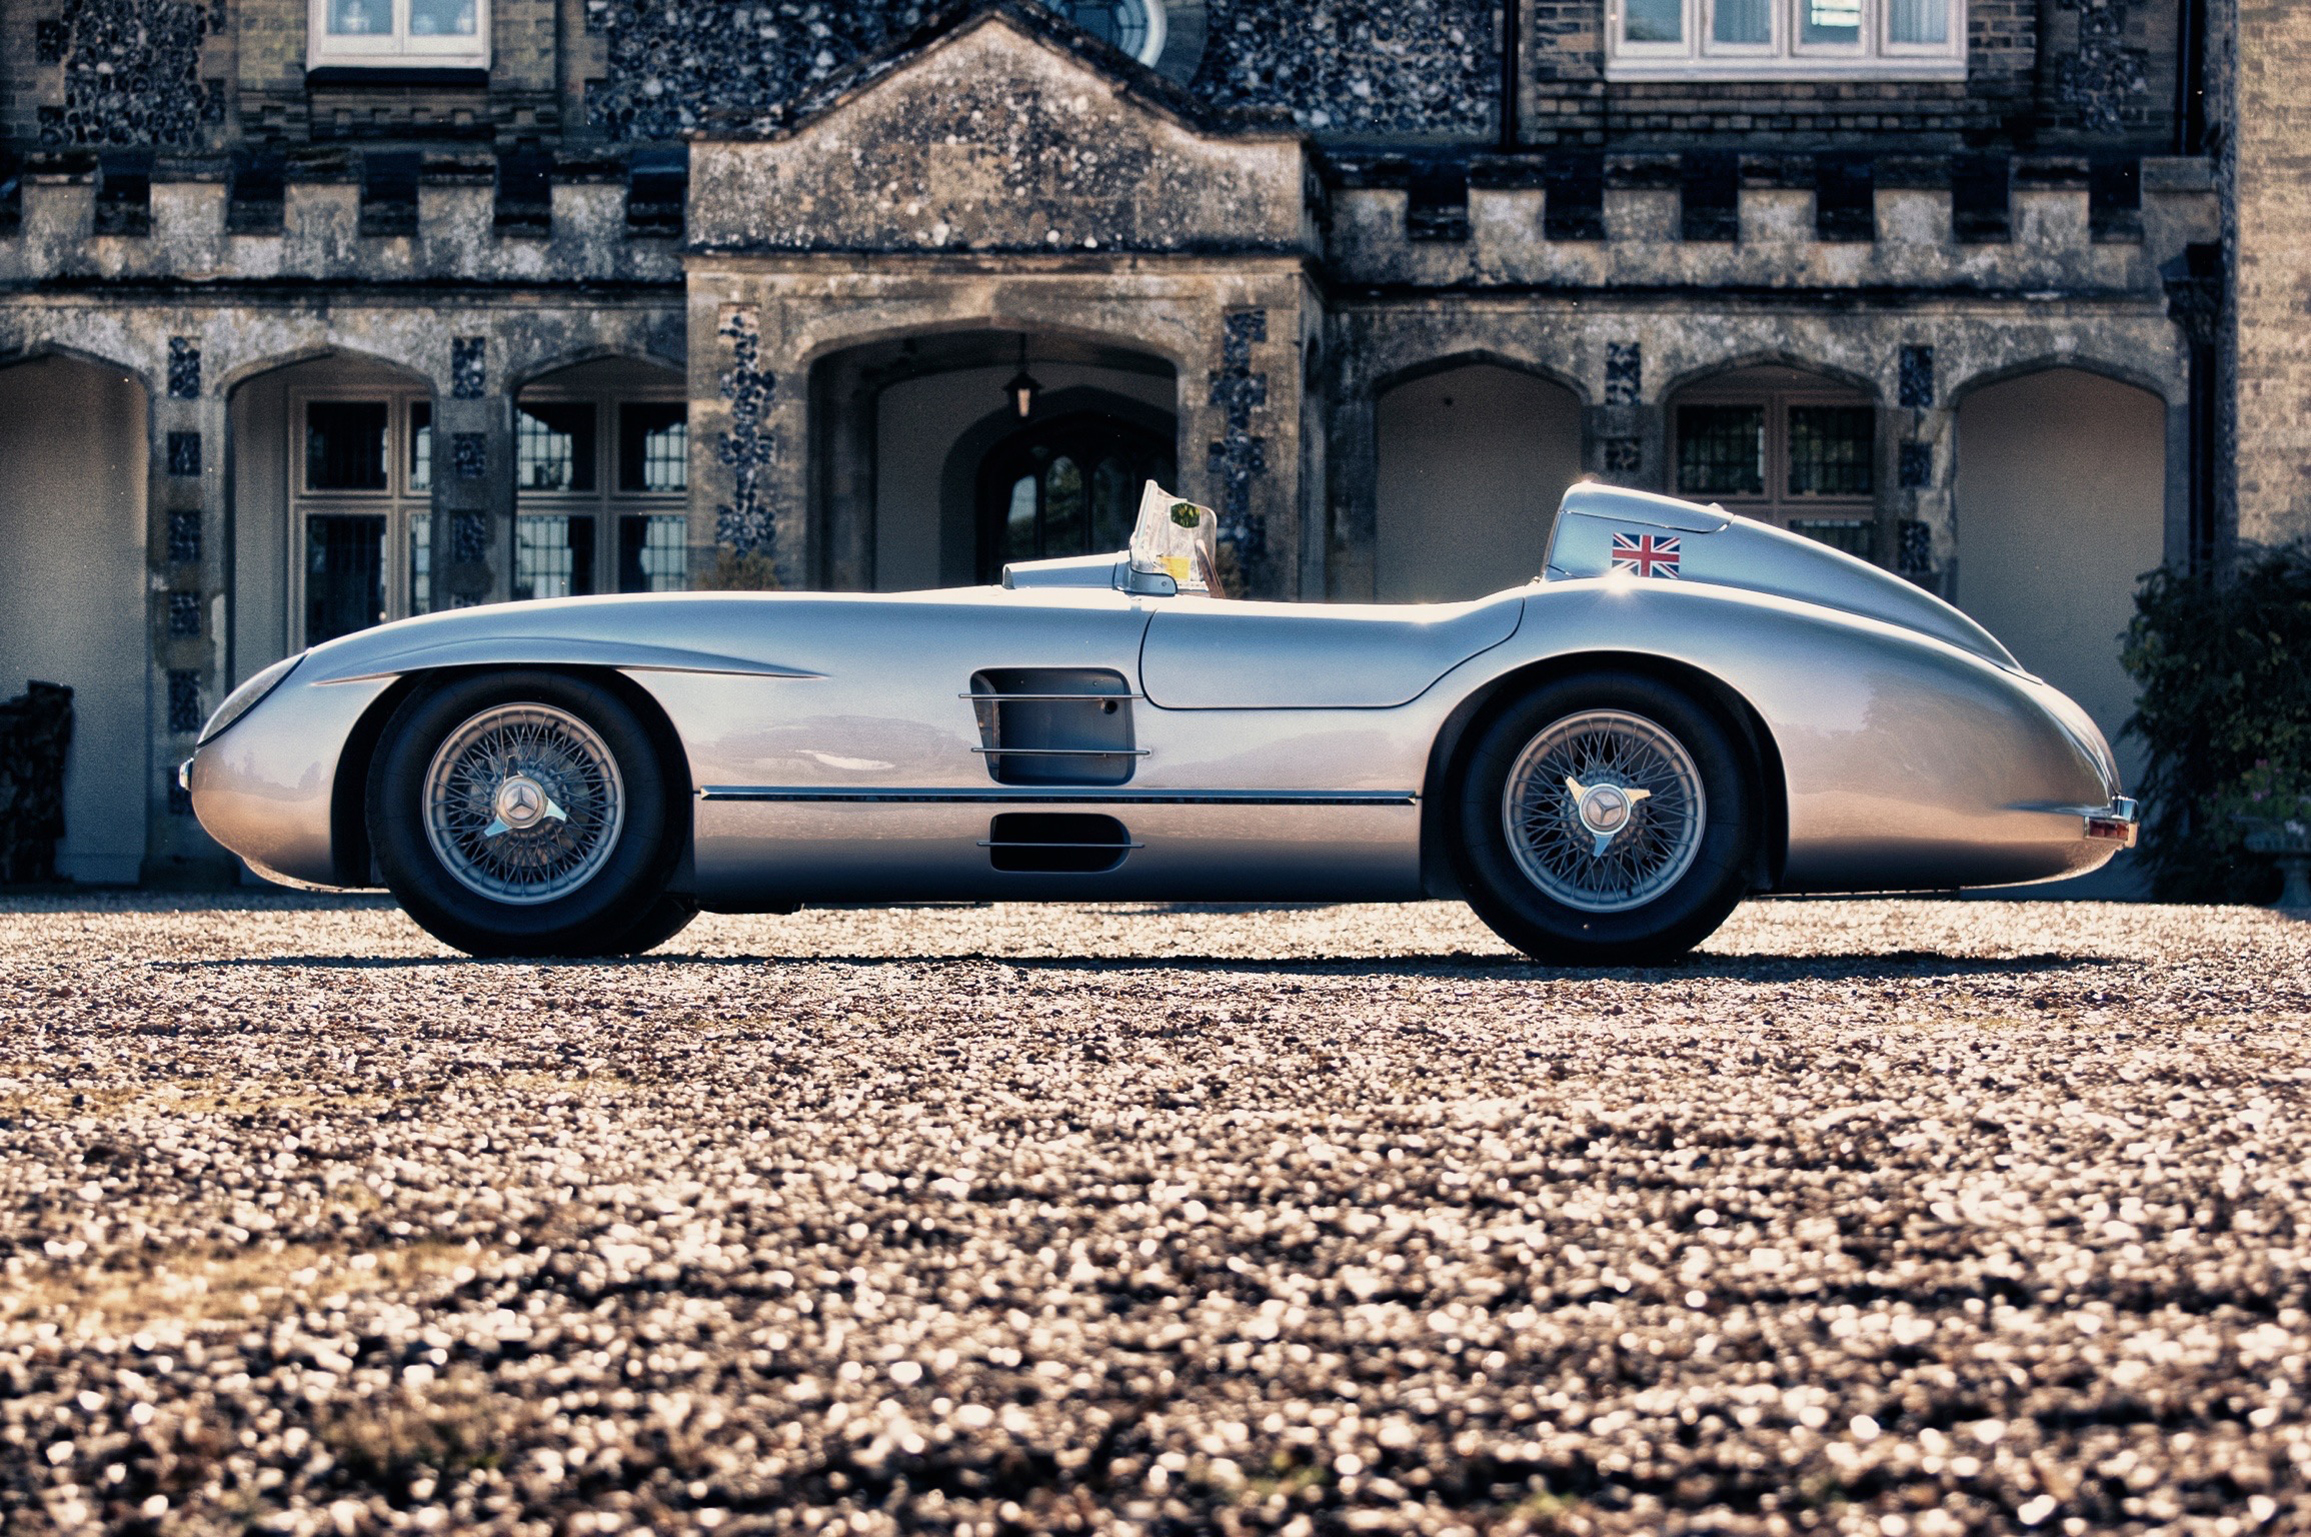 Mercedes 300 slr recreation headlines classic race auction for Mercedes benz 300 slr